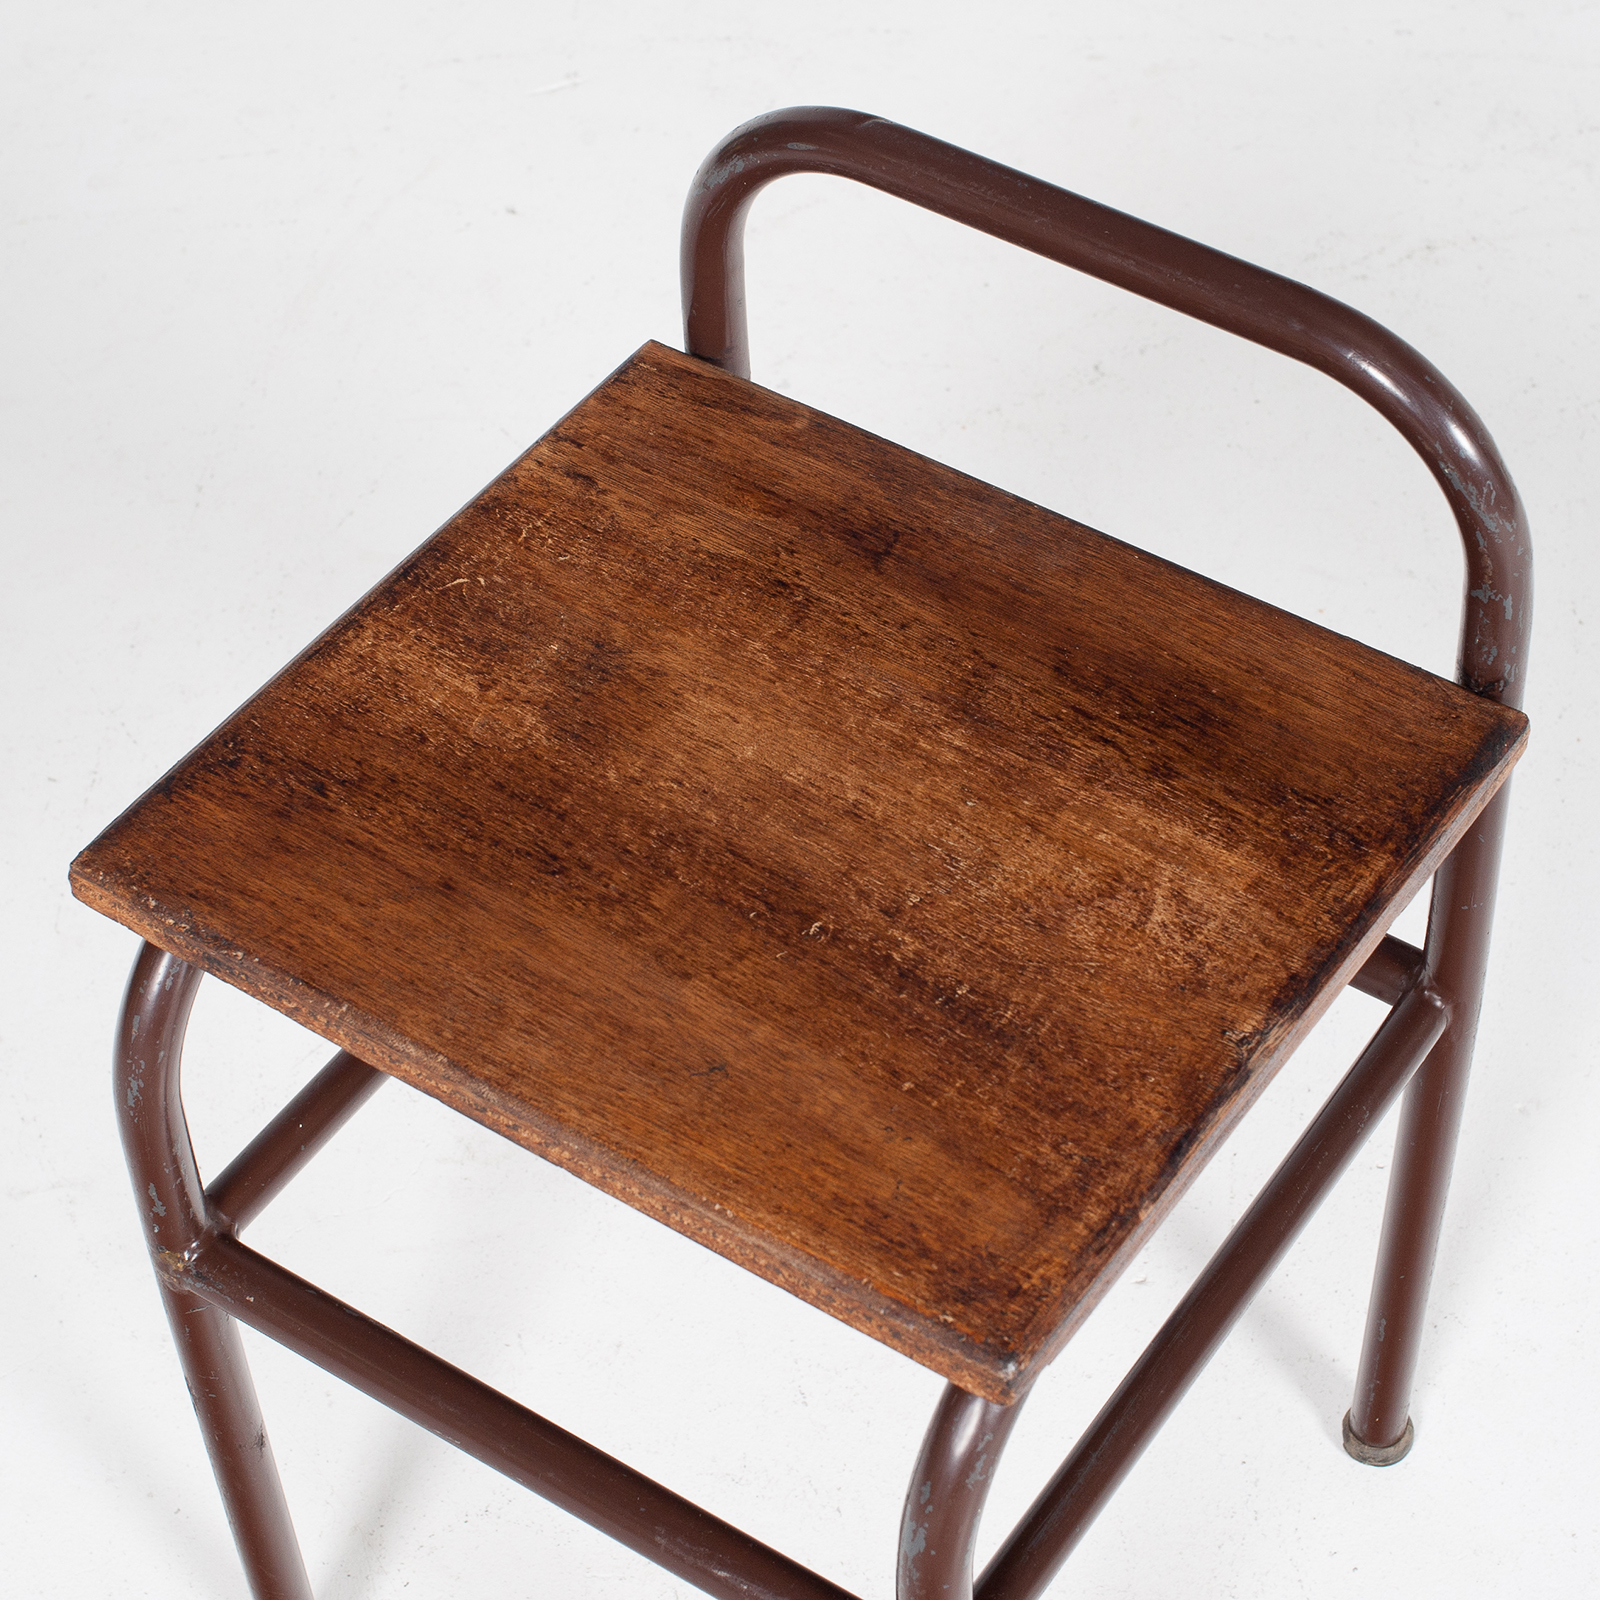 Industrial Stool With Timber Seat, Belgium Mt Stl 194 2602 Be Set 2 Of 2 82